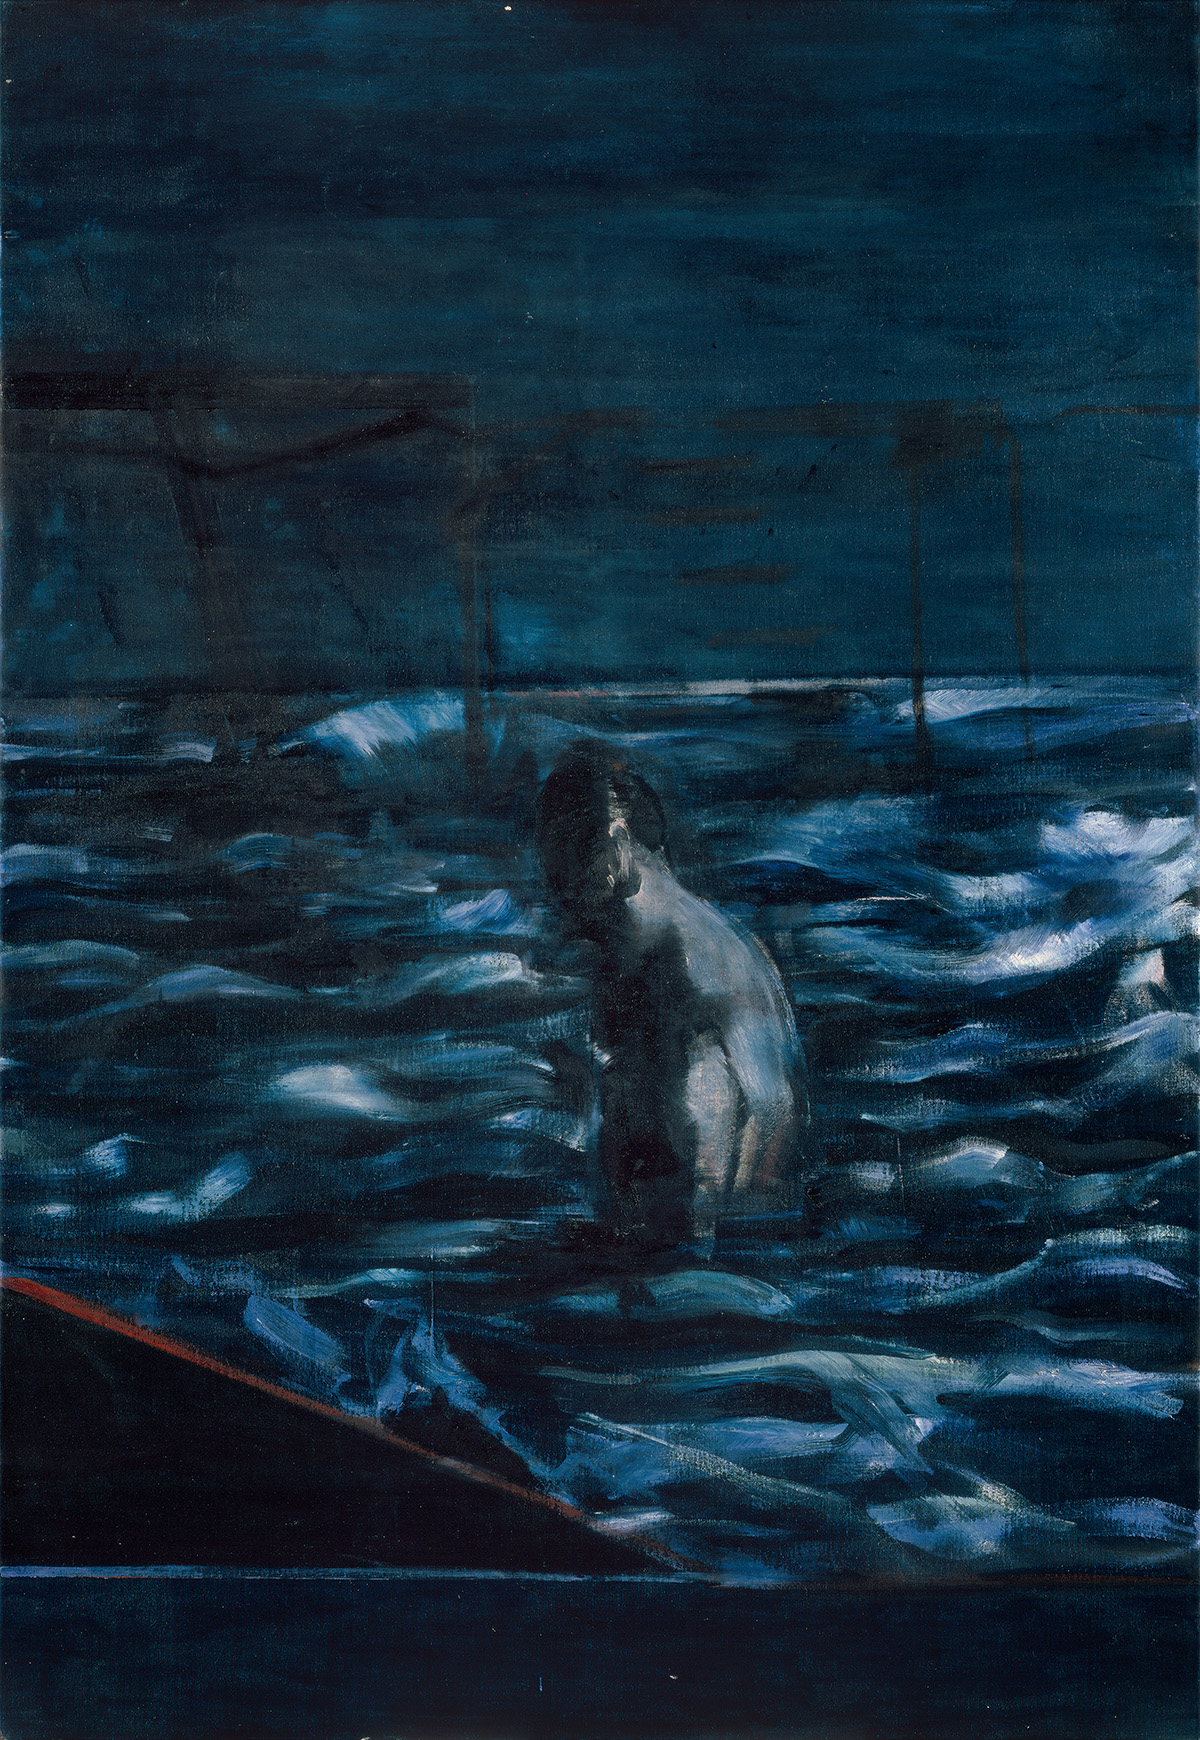 Francis Bacon, 'Figure in Sea', c.1957. Oil on canvas. CR number 57-24. © The Estate of Francis Bacon / DACS London 2020. All rights reserved.